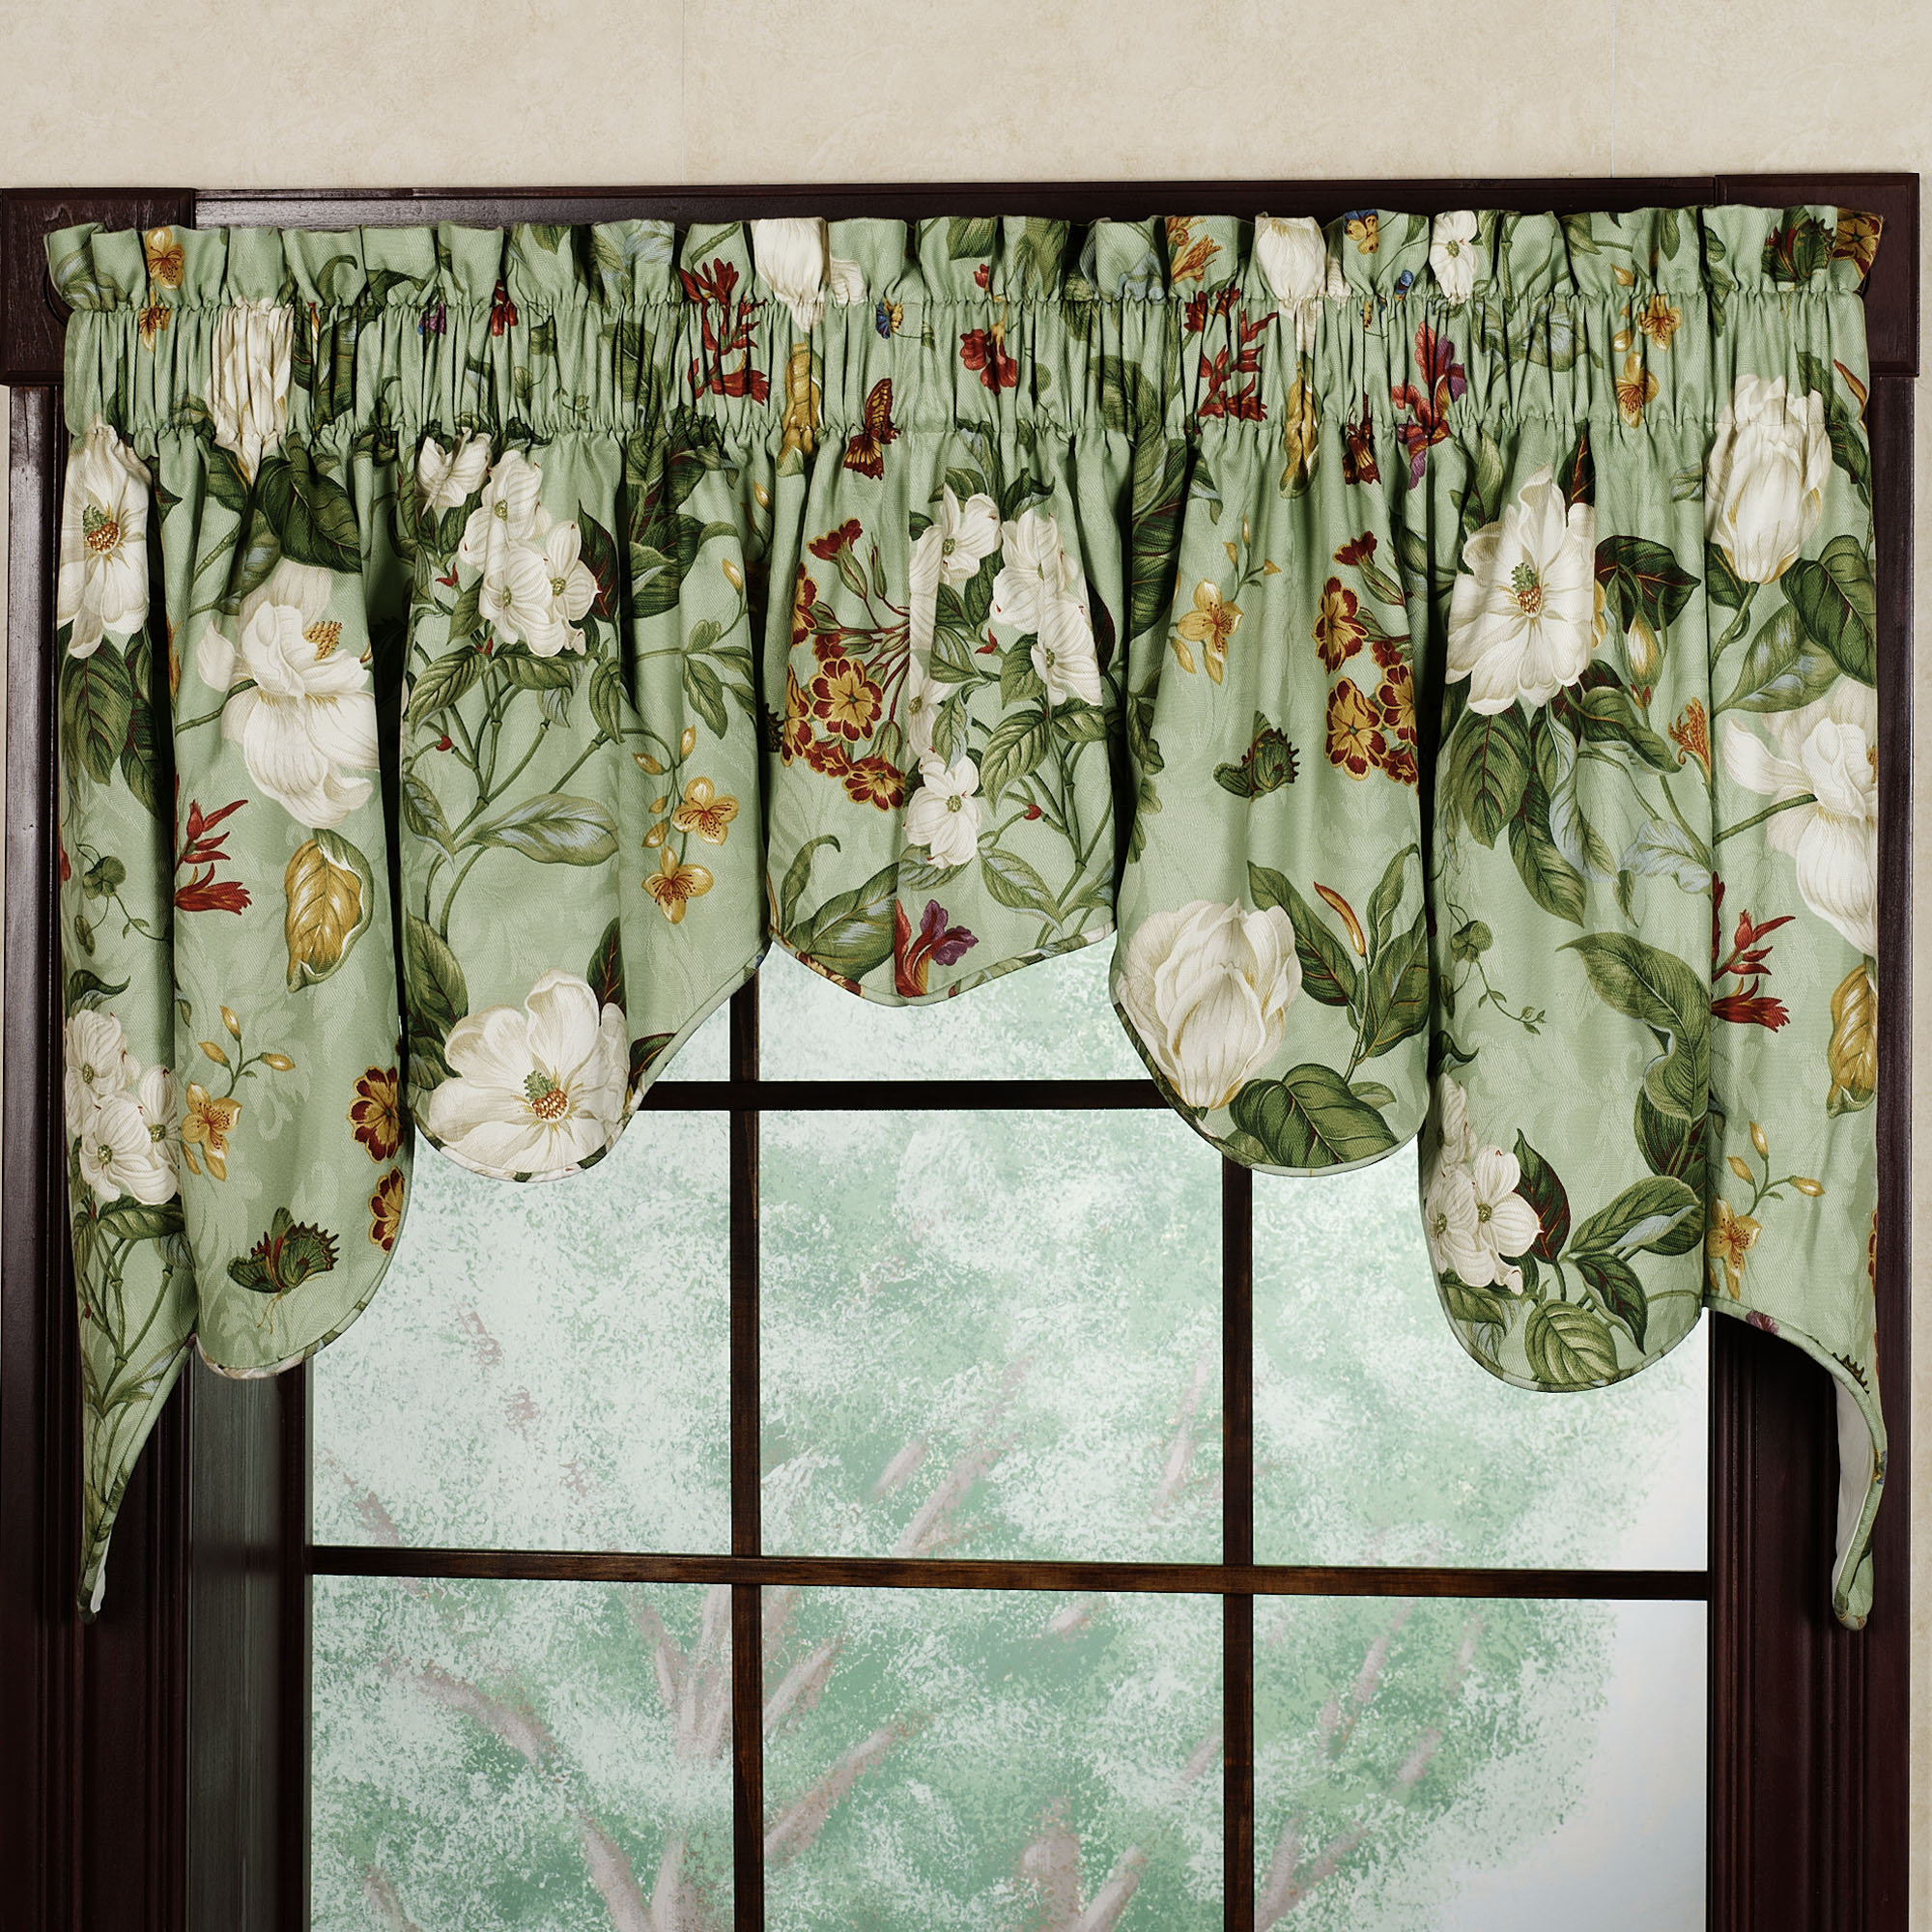 green balloon mint designs valance pocket carousel window valances large solid rod style